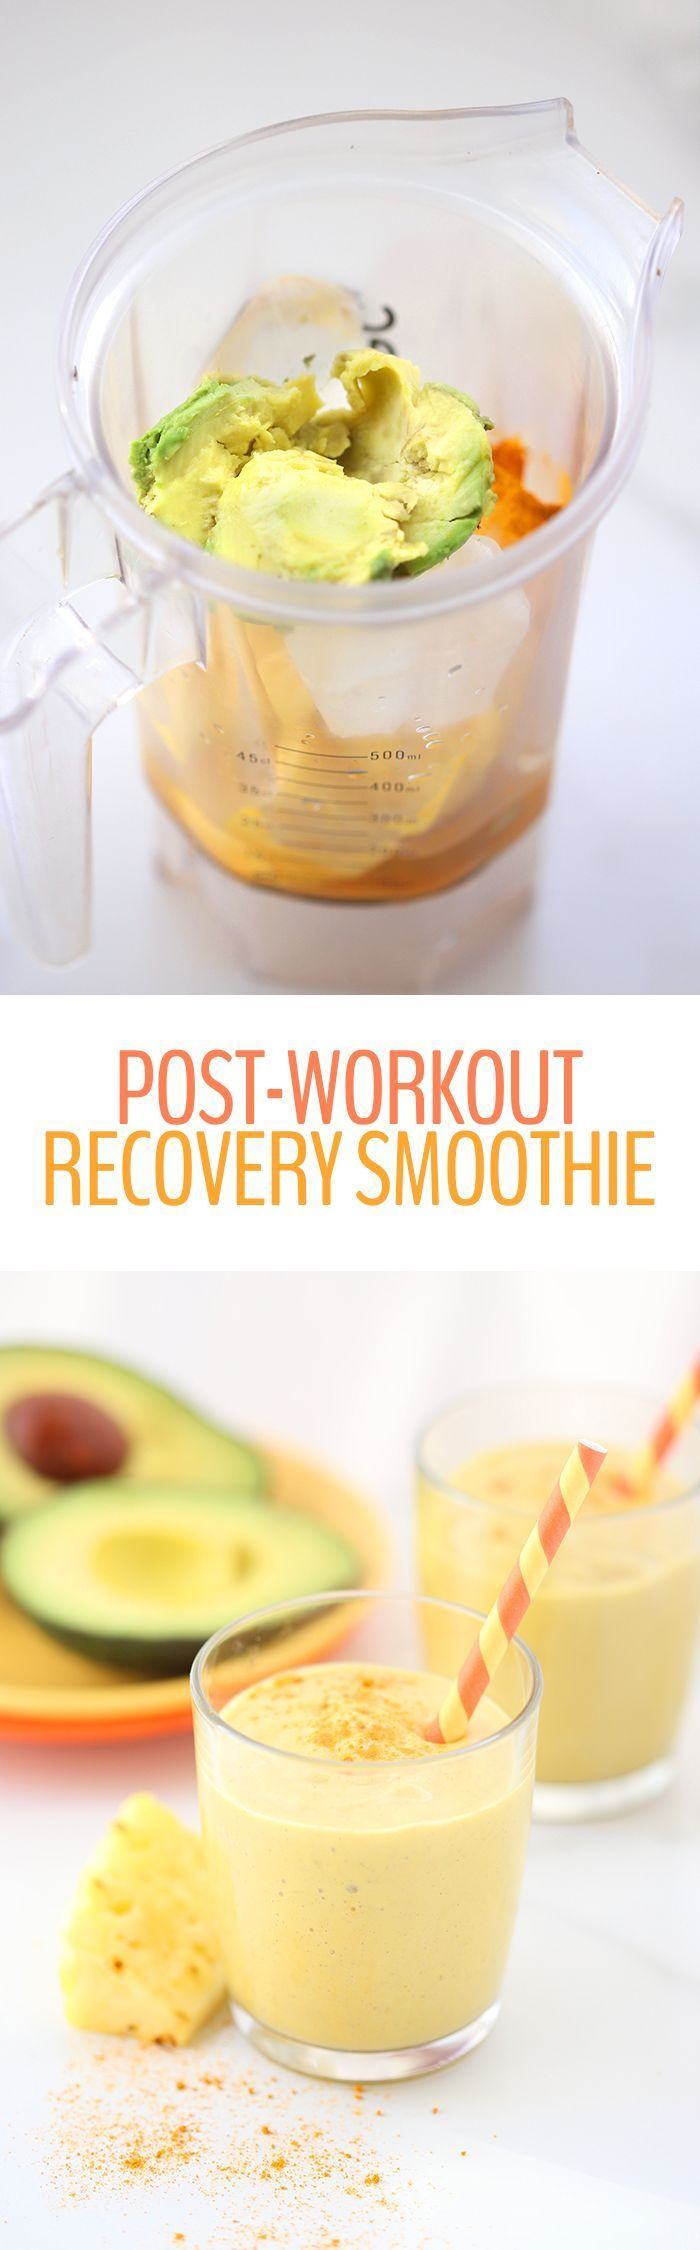 Your Post Workout Routine Needs This One Supplement Crushed it in the gym? Help your body recover with this Post-Workout Recovery Smoothie. Full of anti-inflammatory and vitamin-packed ingredients, this smoothie will help prevent soreness and rebuild your muscles.